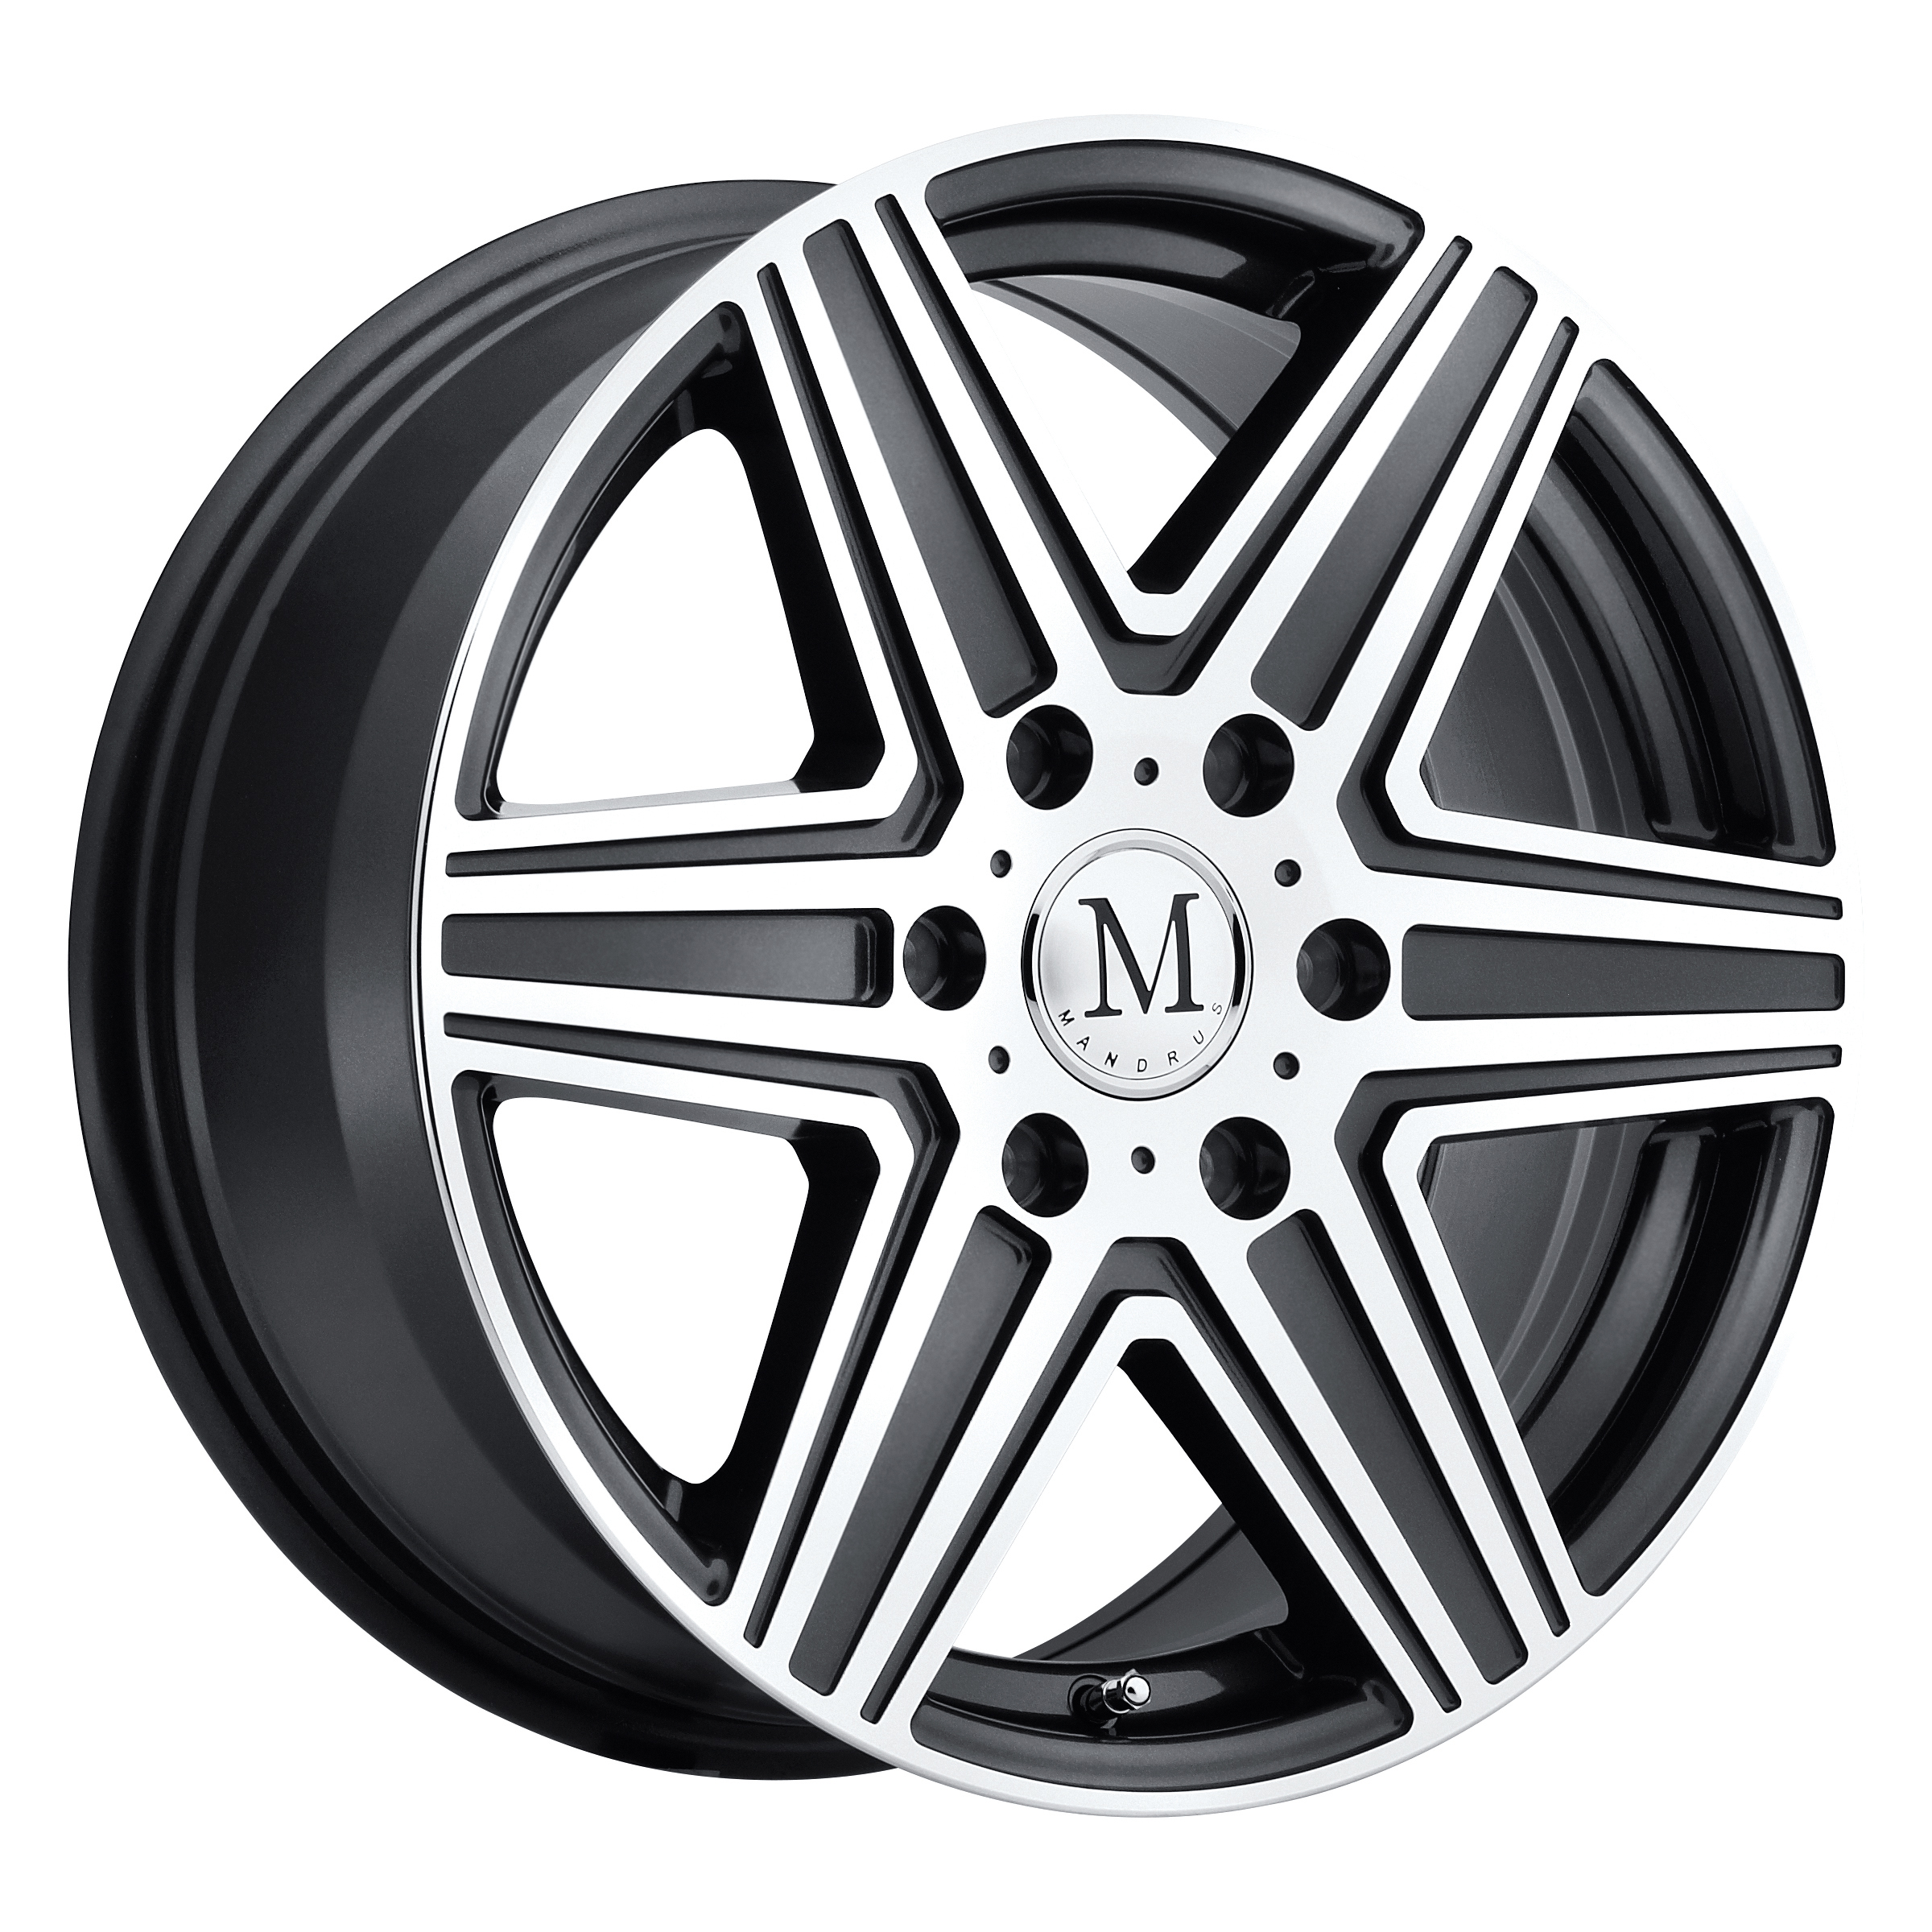 usarim inch mbz mercedes benz archives hsml wheels